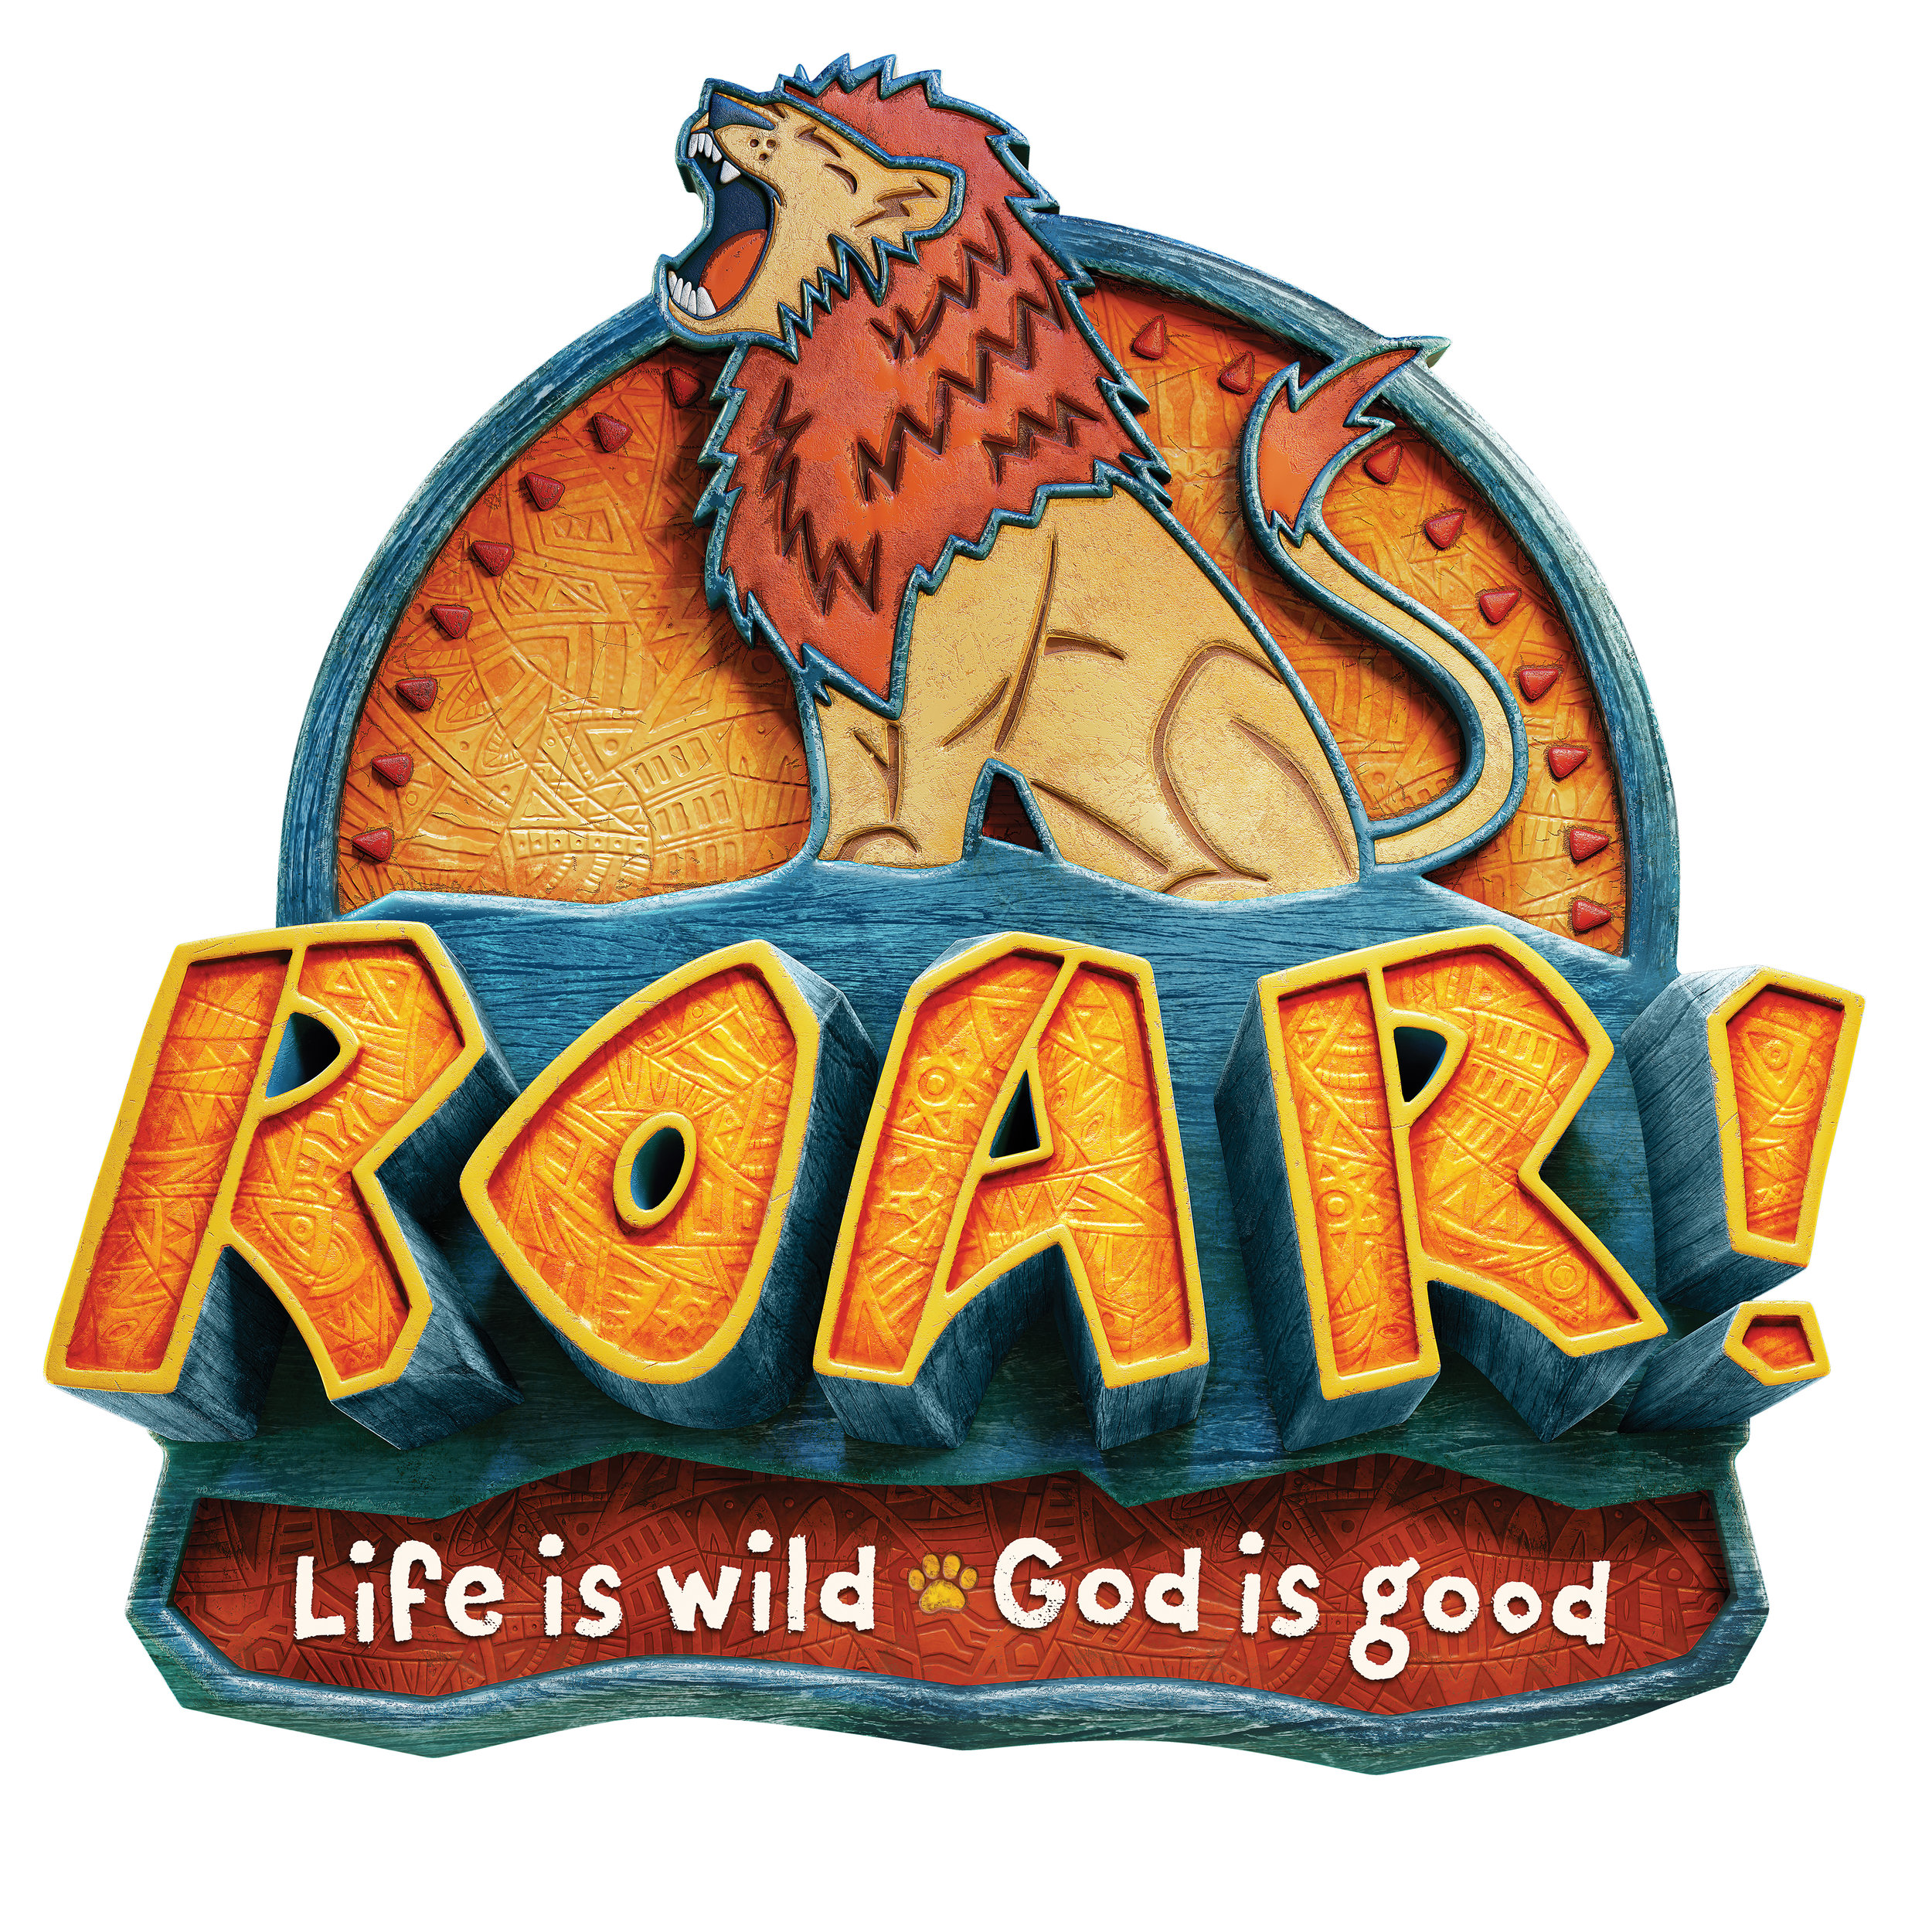 You are invited to help craft this year's Vacation Bible School. Join us at Crossfire on Sunday, April 14 from 11:30 a.m. - 3 p.m. Come for part of the time or the whole time!